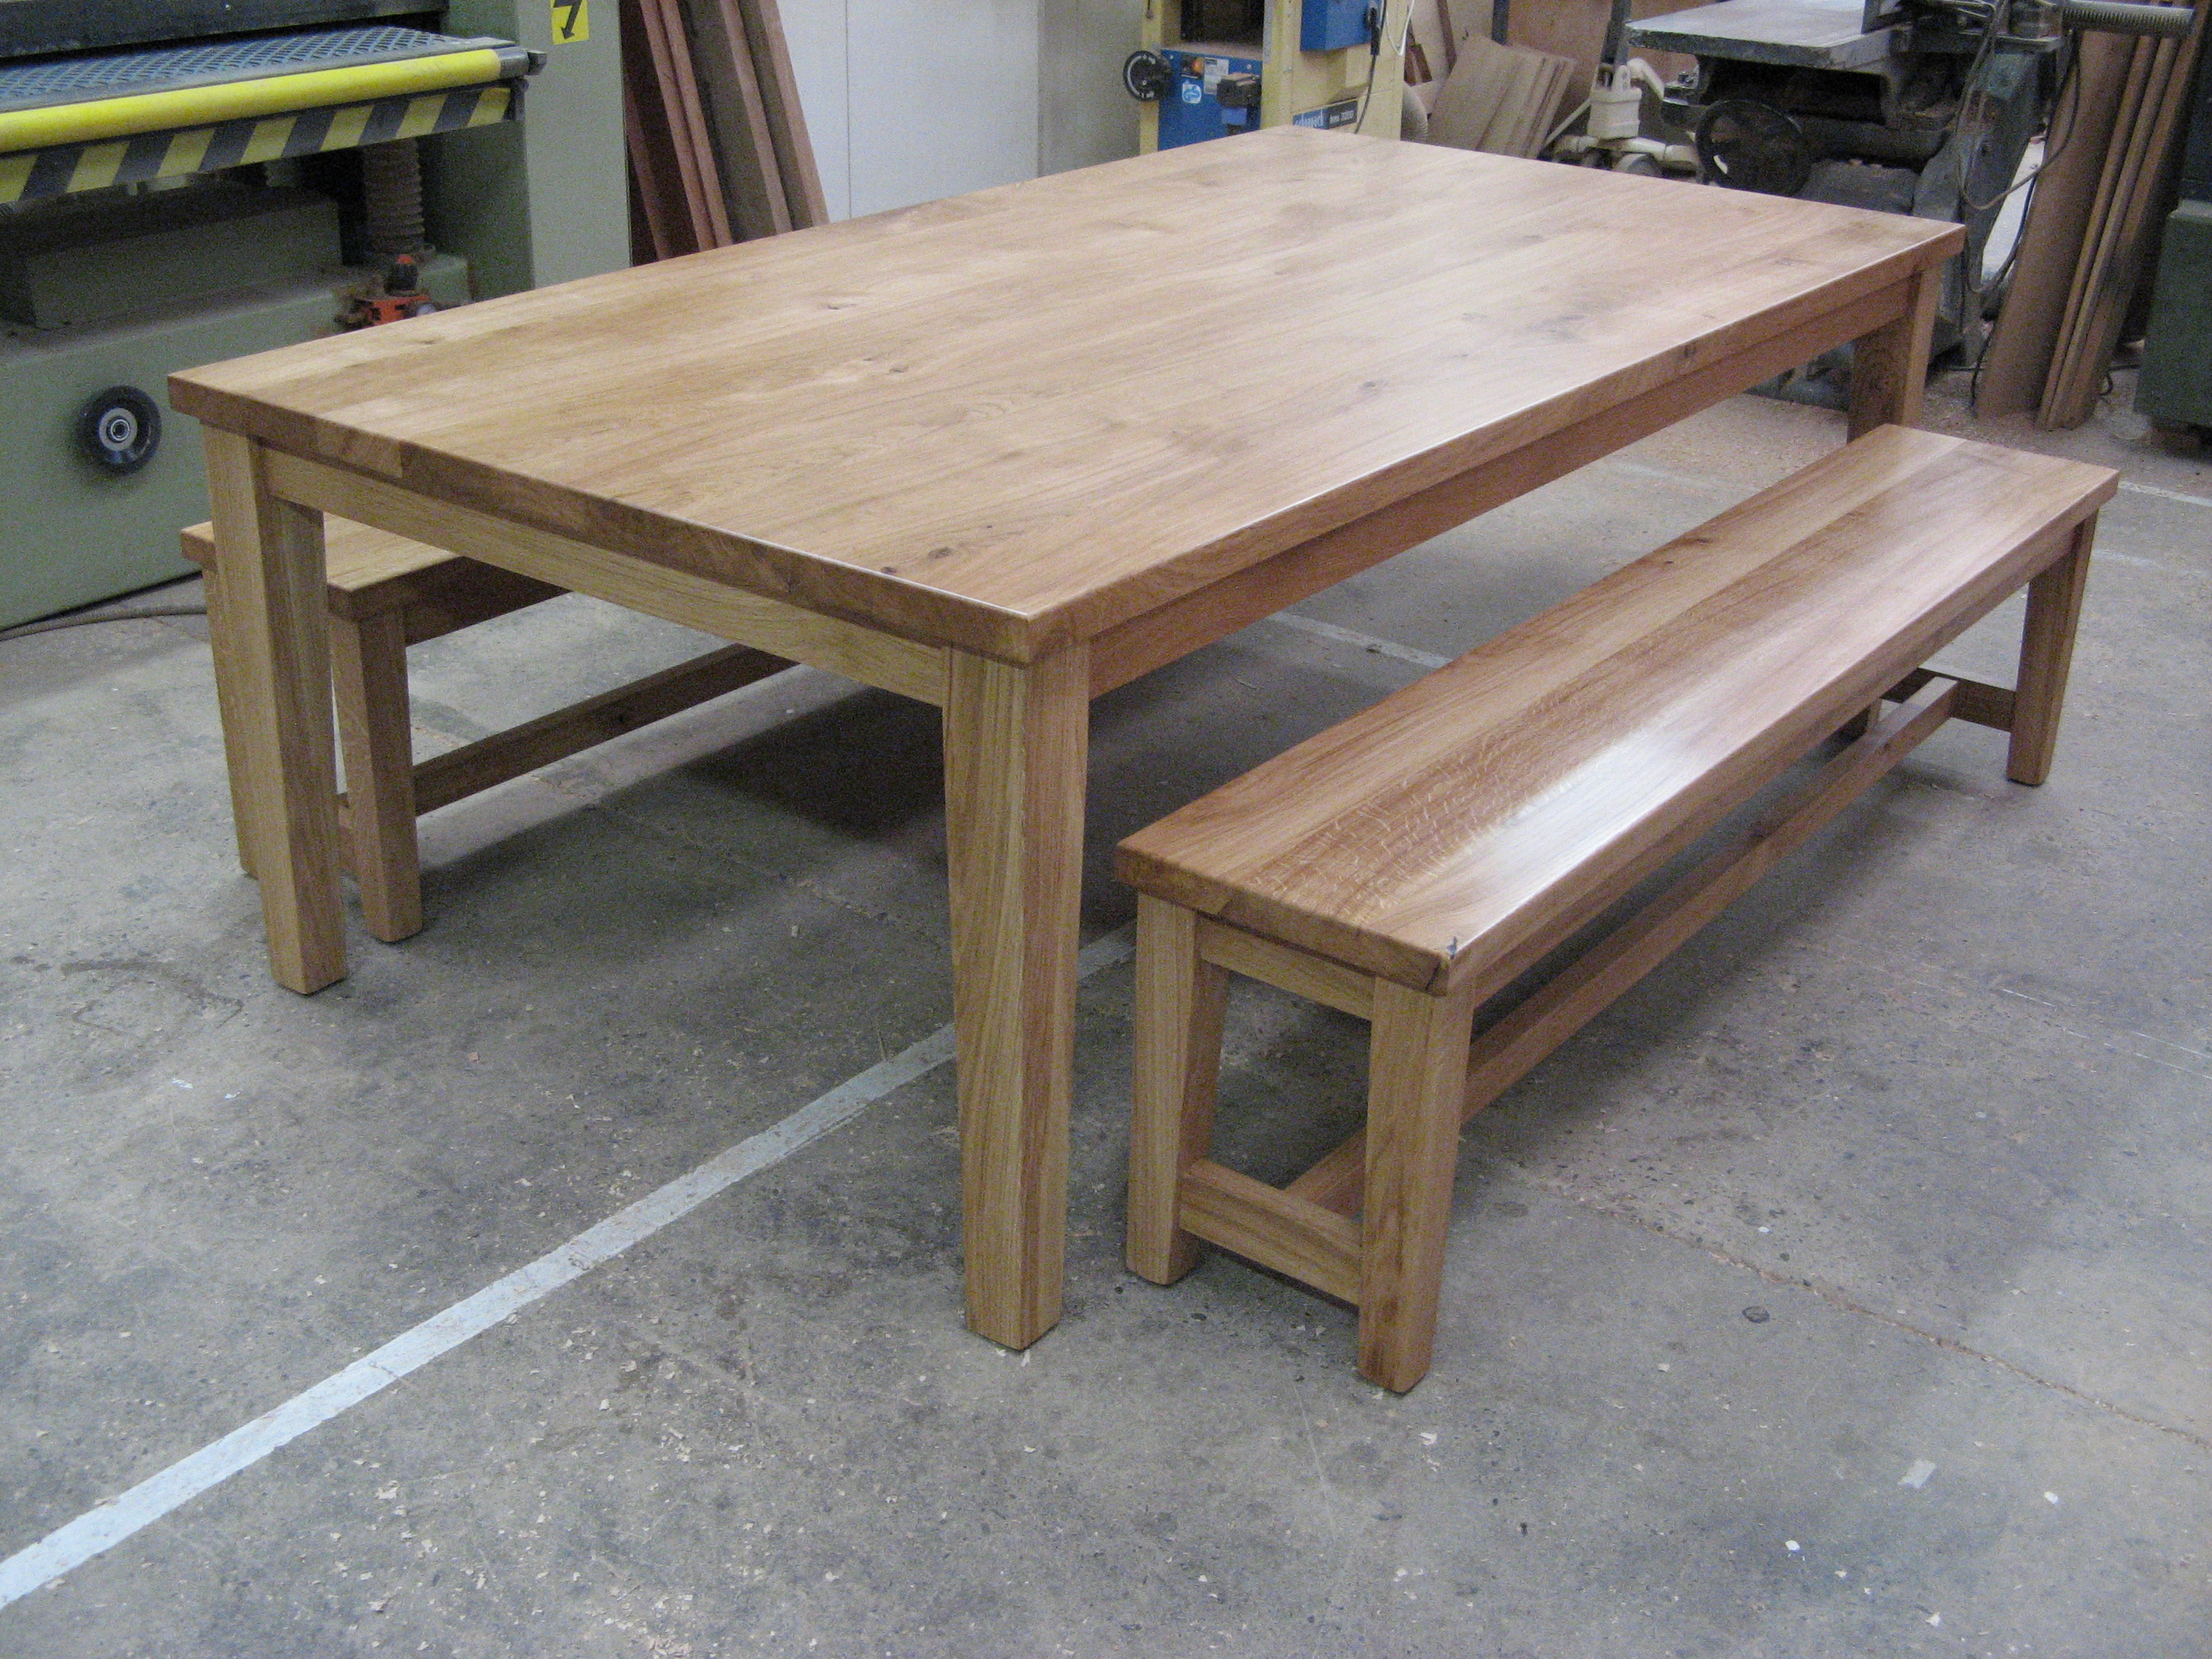 New York Table Bench Seats Gavin Cox Furniture